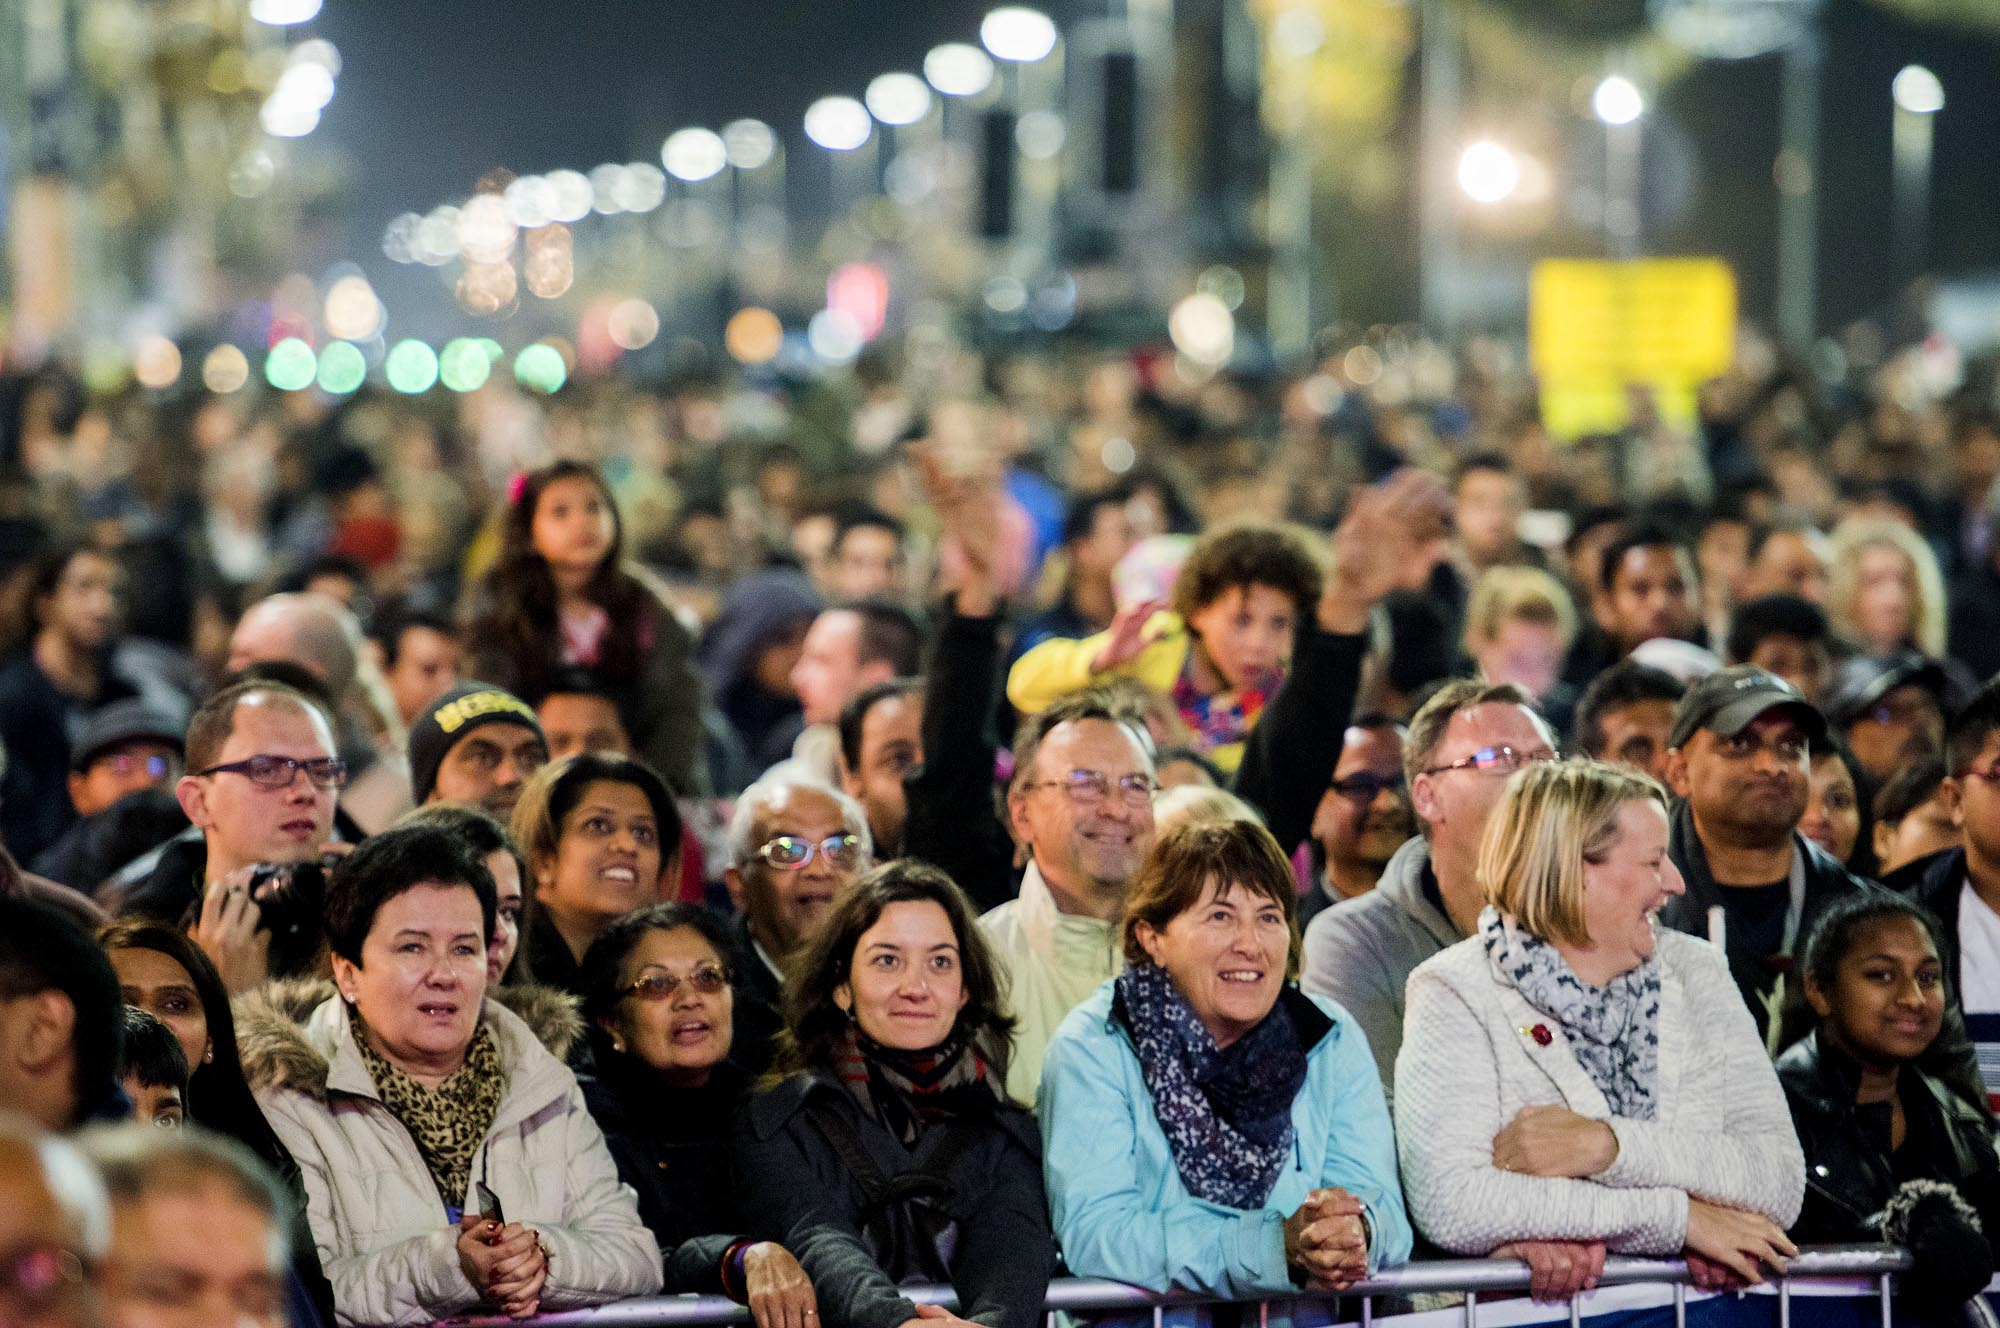 Today Leicester's Diwali Lights attract a diverse range of people to Leicester -